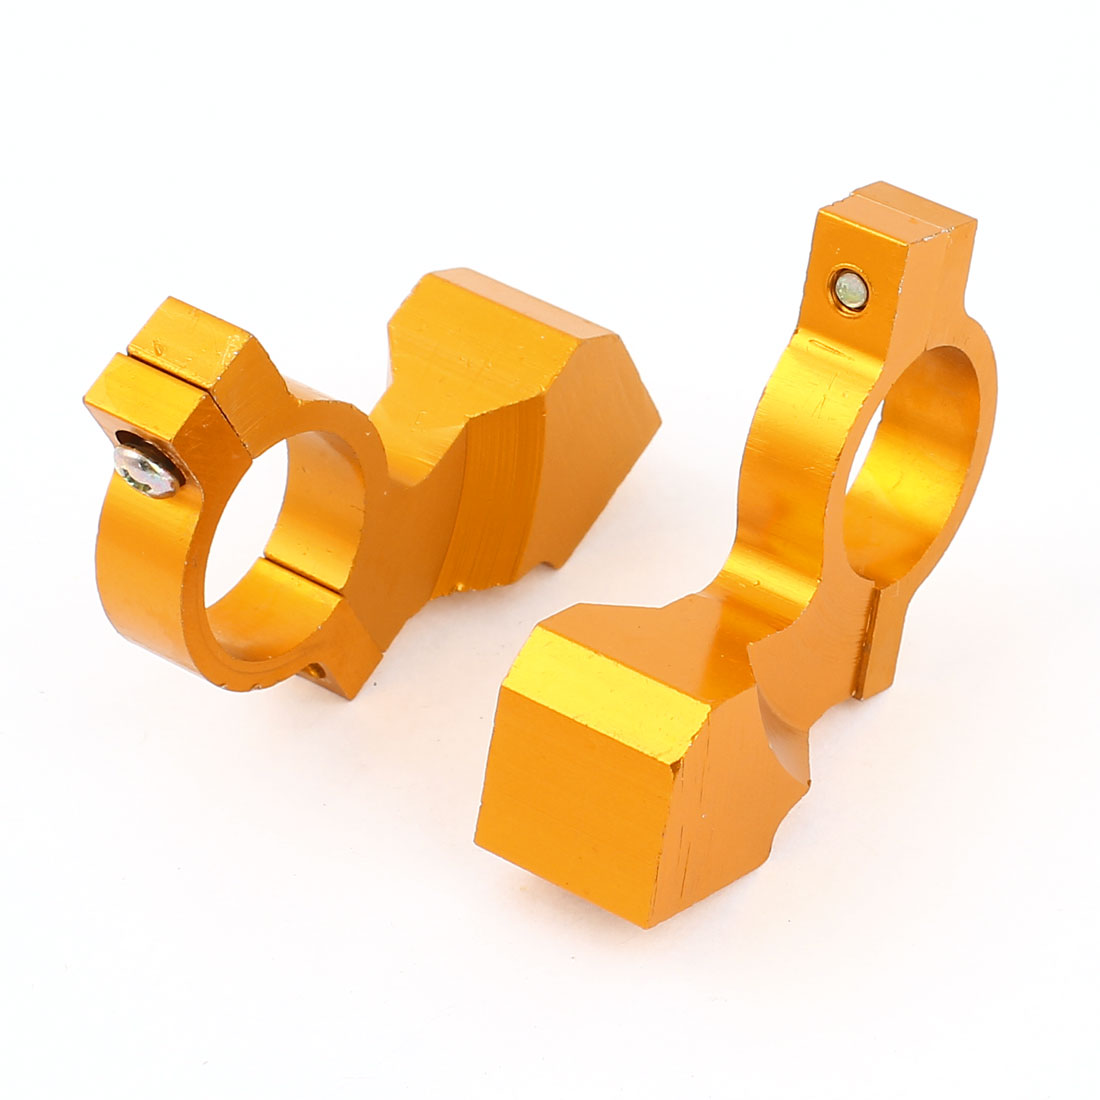 2 Pcs Gold Tone Aluminum 10mm Thread Dia Handlebar Mirror Mount Holder Clamp for Motorcycle